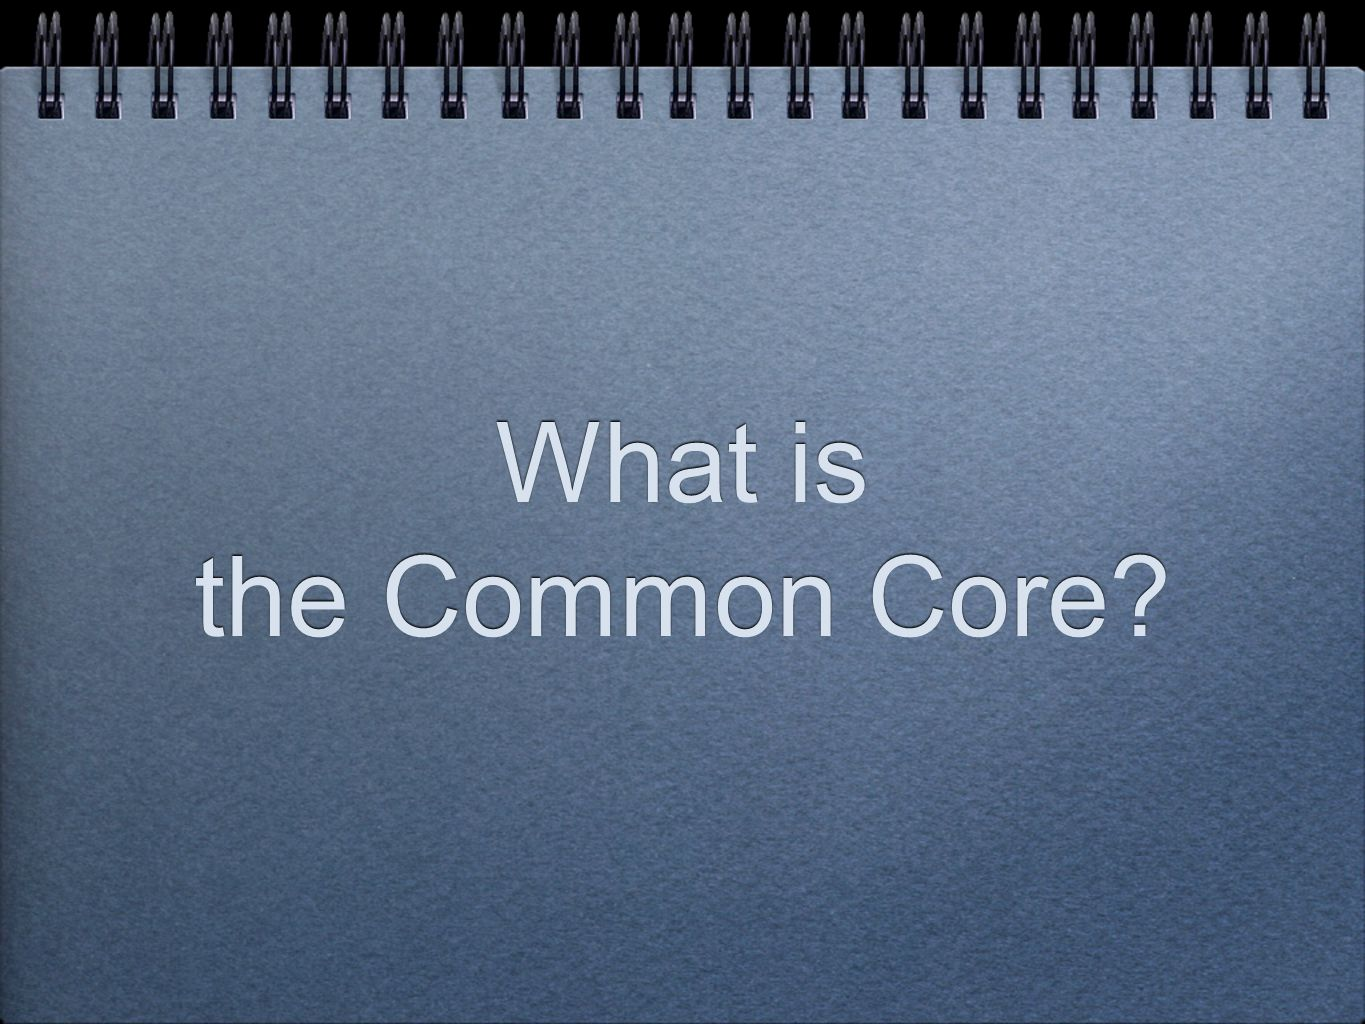 What is the Common Core?